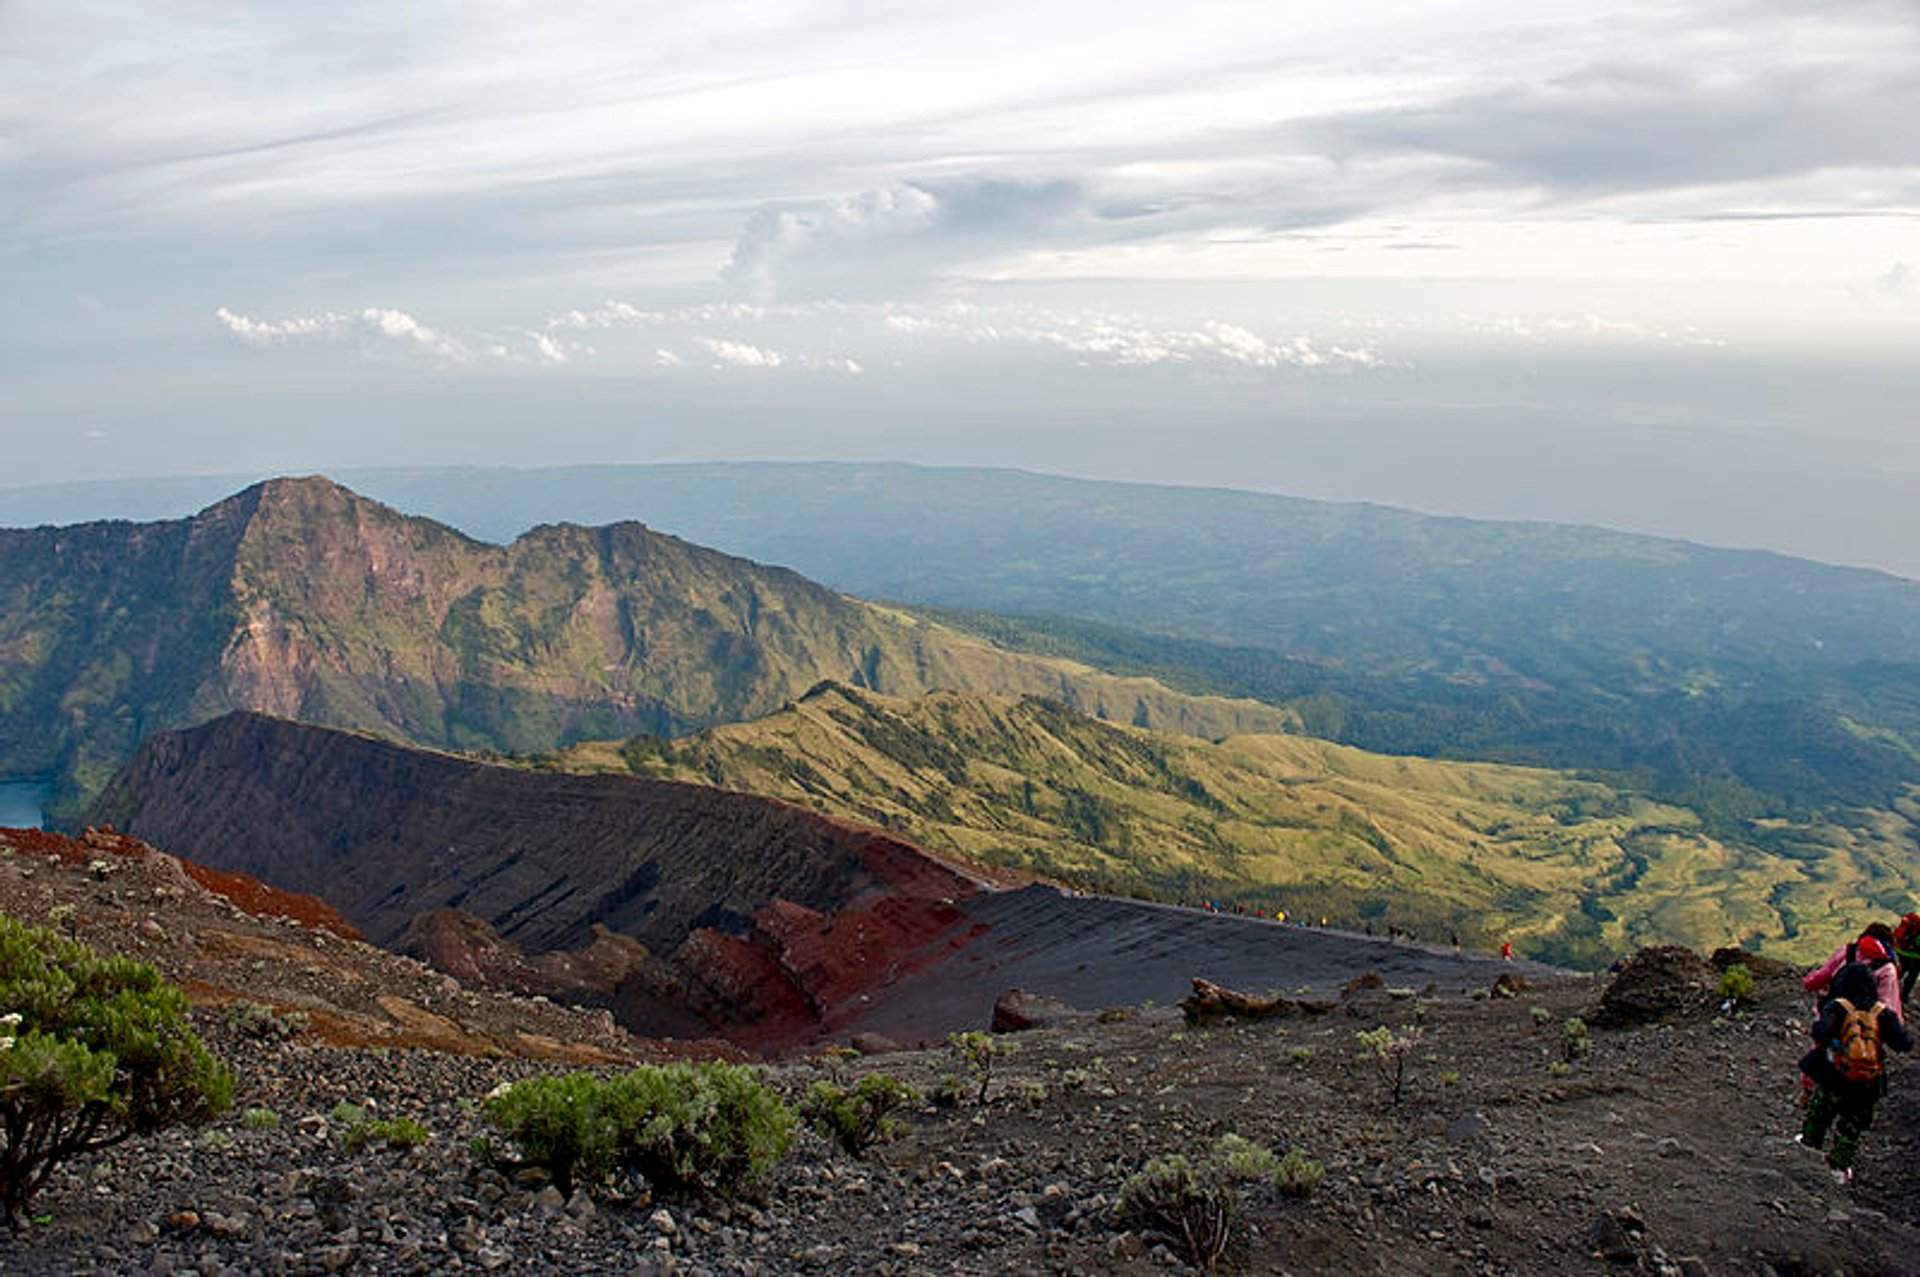 Mount Rinjani National Park in Indonesia - Best Season 2020